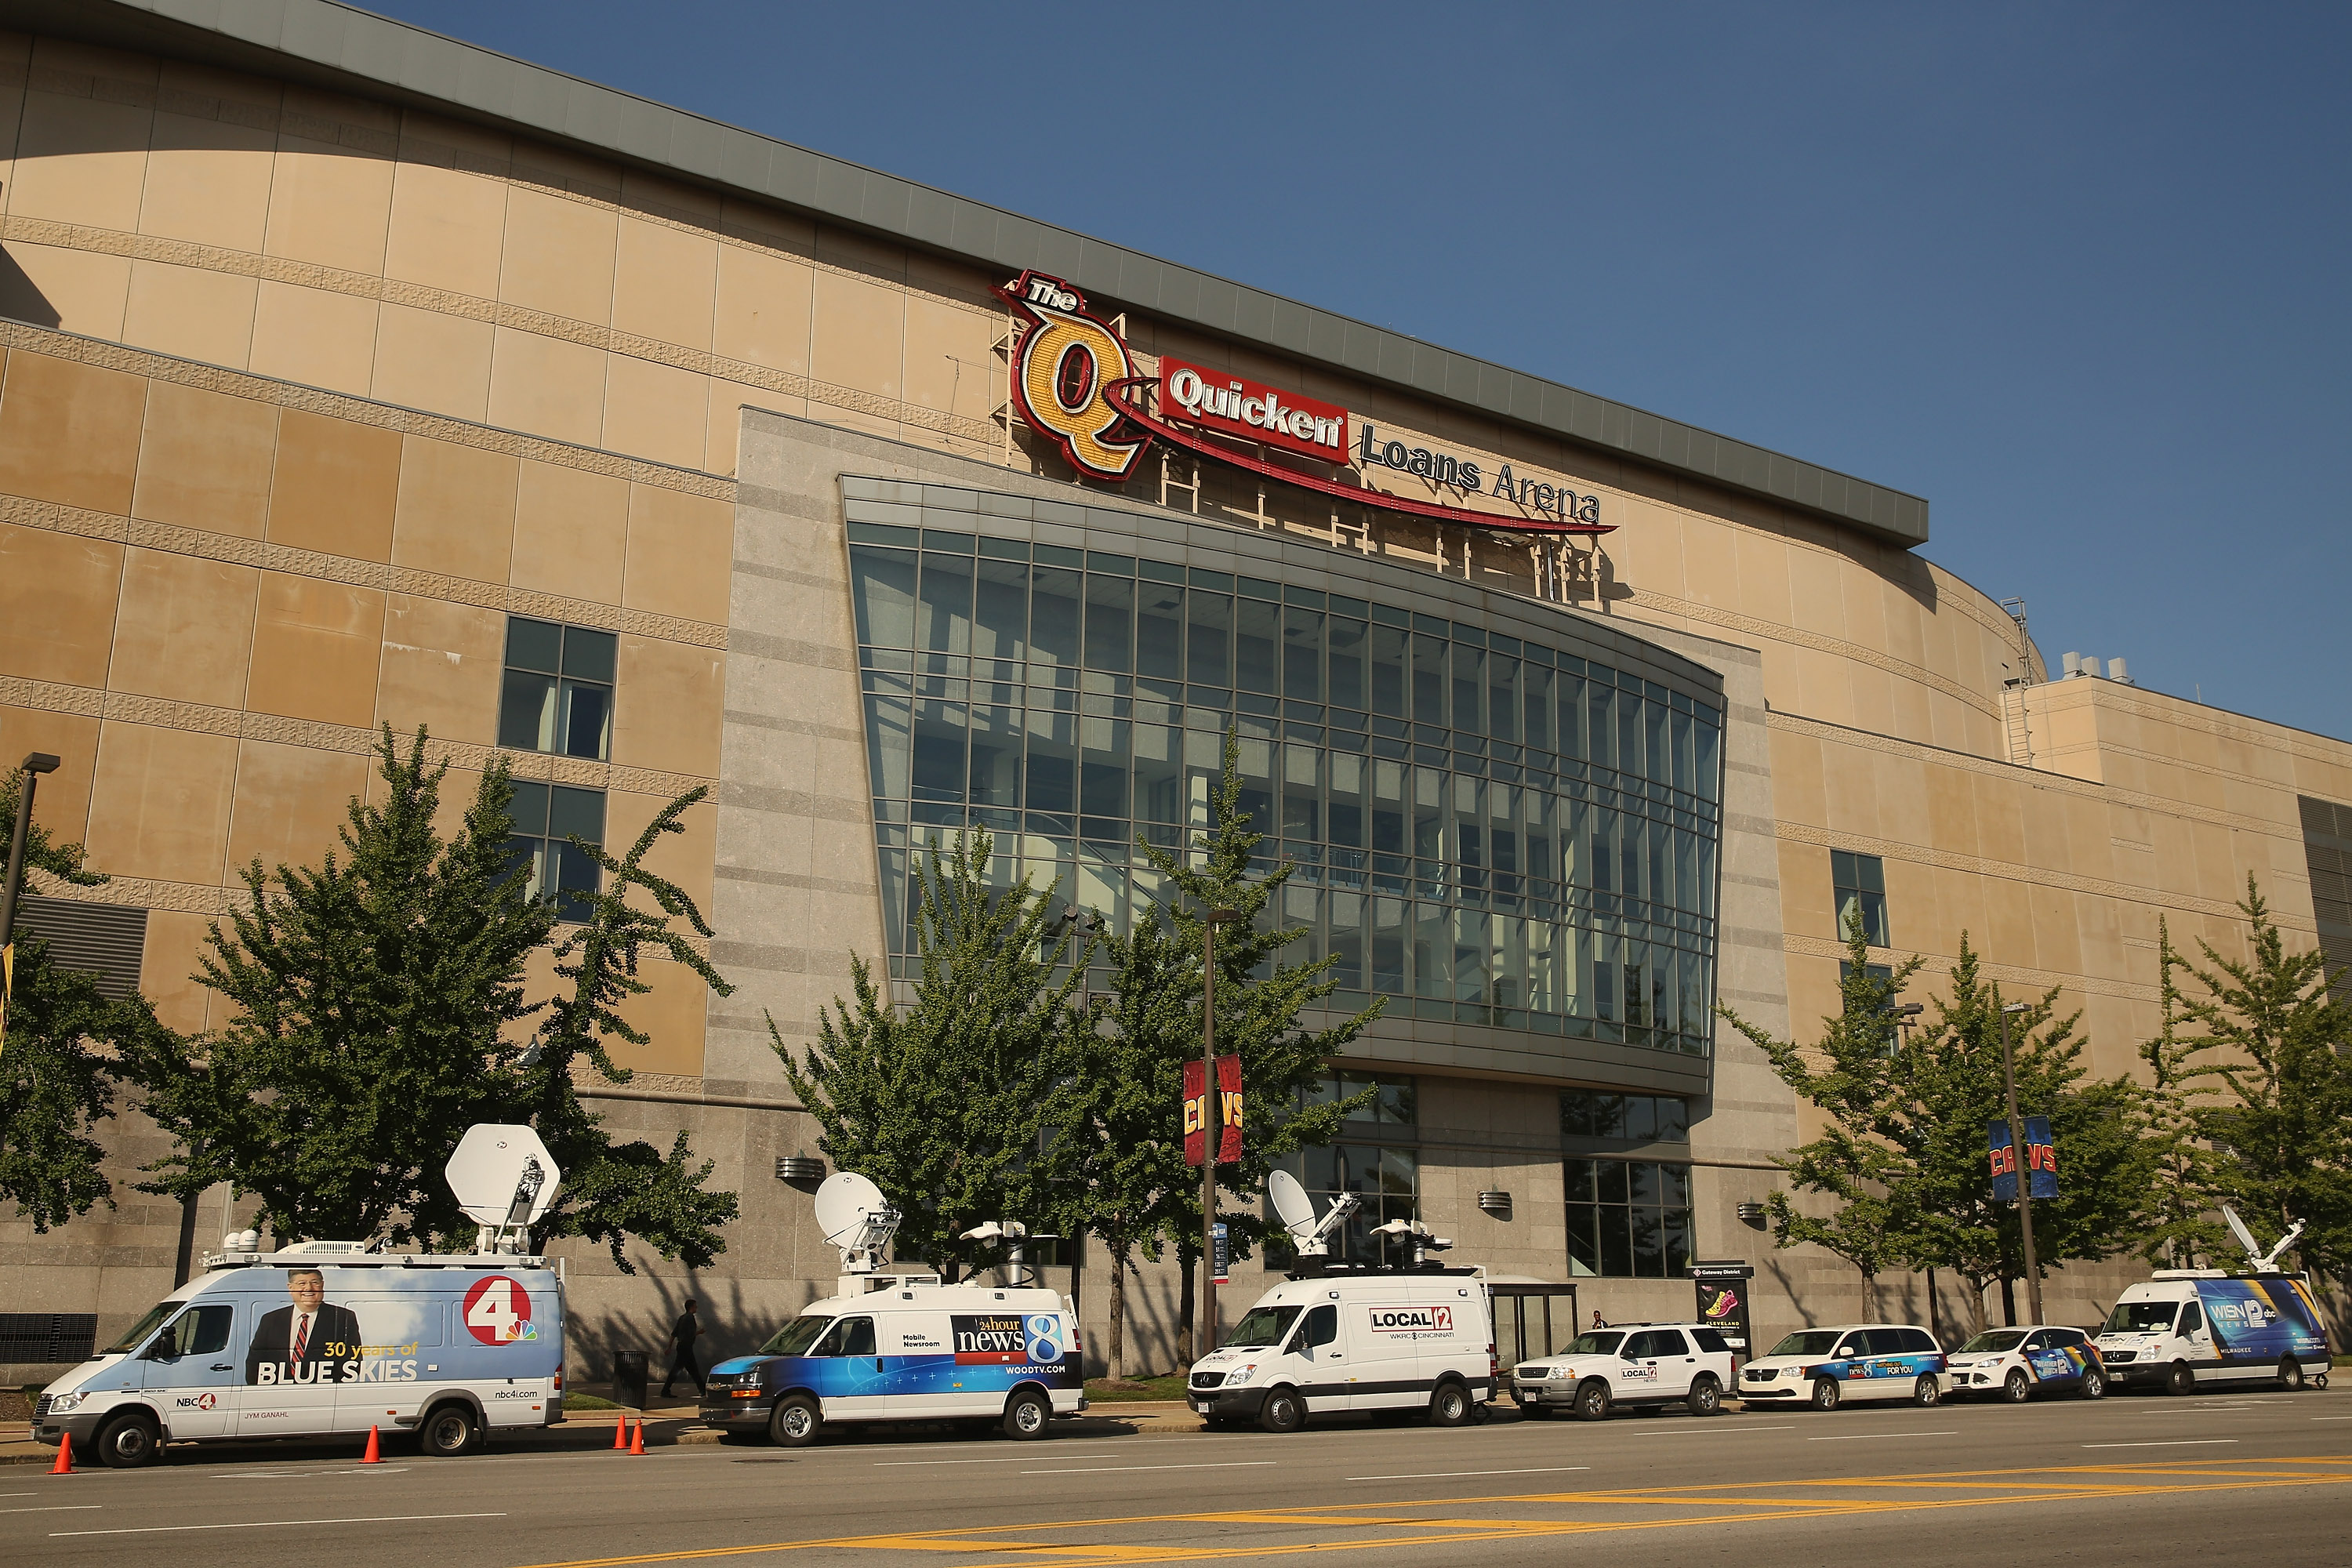 Cleveland Prepares For First Republican Presidential Debate Of 2016 Election